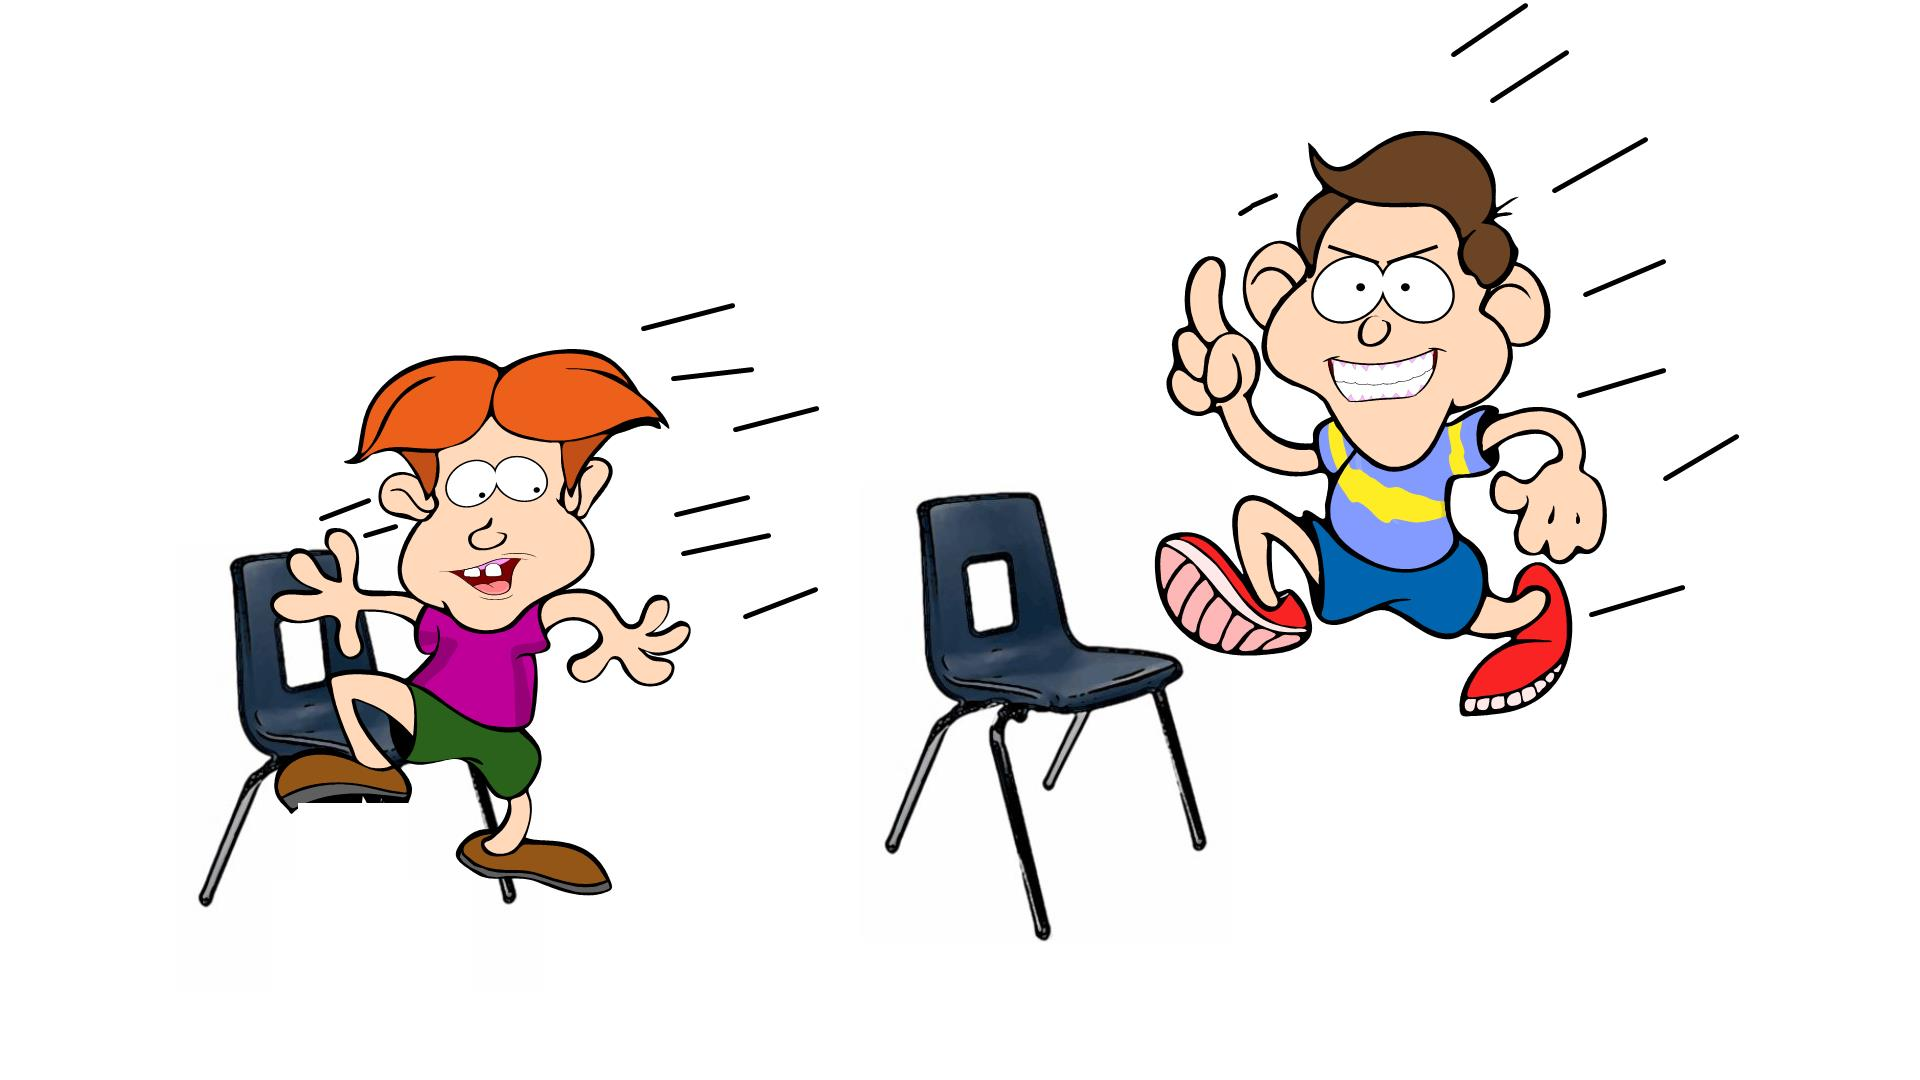 chair games for seniors where to buy covers three easy super fun class straight talk on 2nd grade